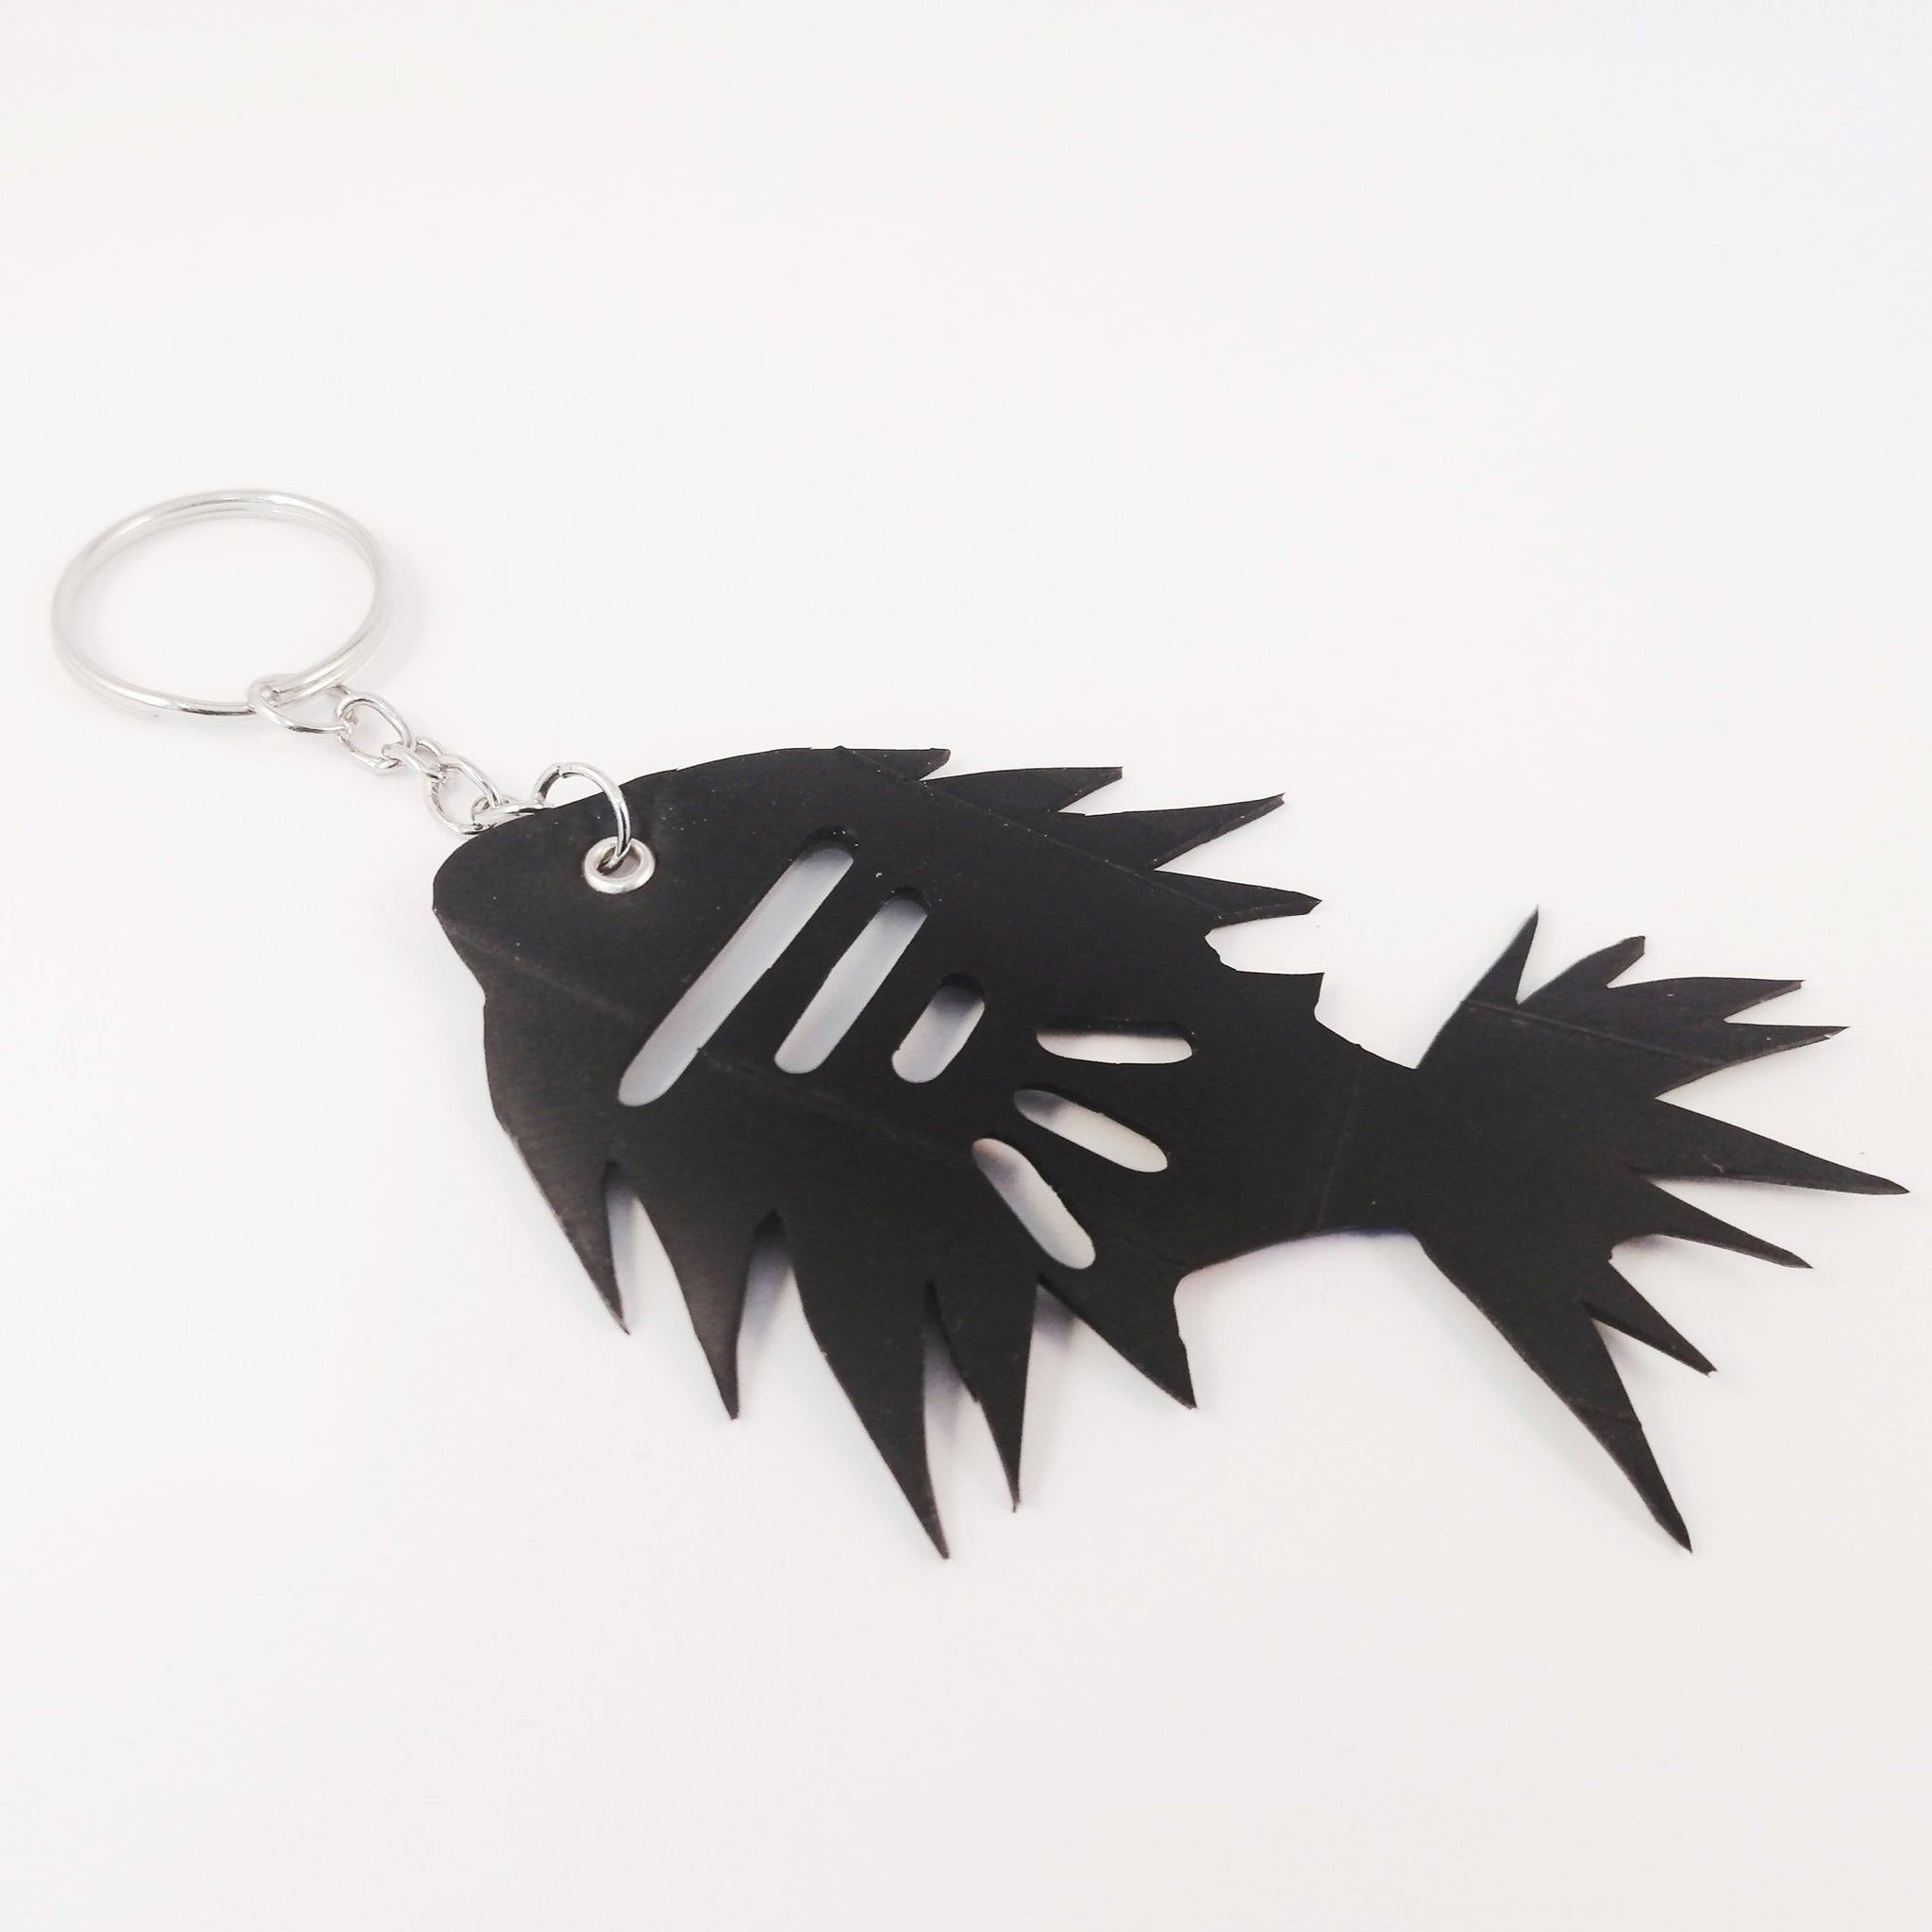 Banshy-fish- key ring in inner tube and stainless steel clip- upcycled jewellery- bijou recyclé-poisson porte clé- mer- sea- accessories from the sea- bijoux inspiré de la mer- dive wear-dive accesories - sea brand- vêtement inspiré de la mer